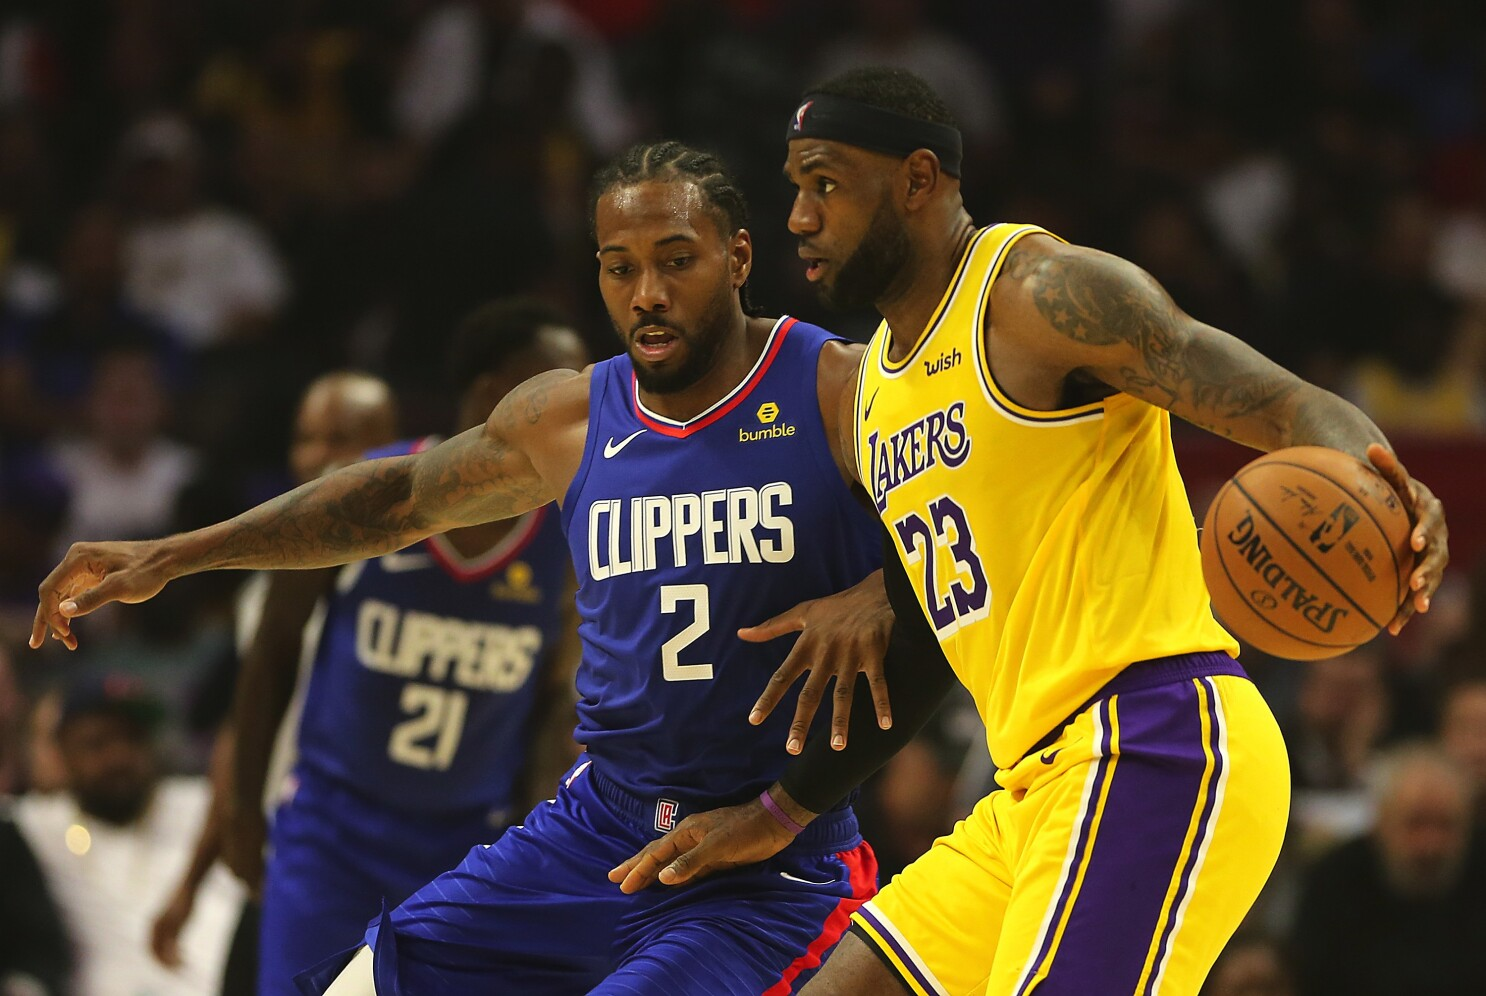 Lakers Vs Clippers In Nba Playoffs Battle Of L A Is Coming Los Angeles Times